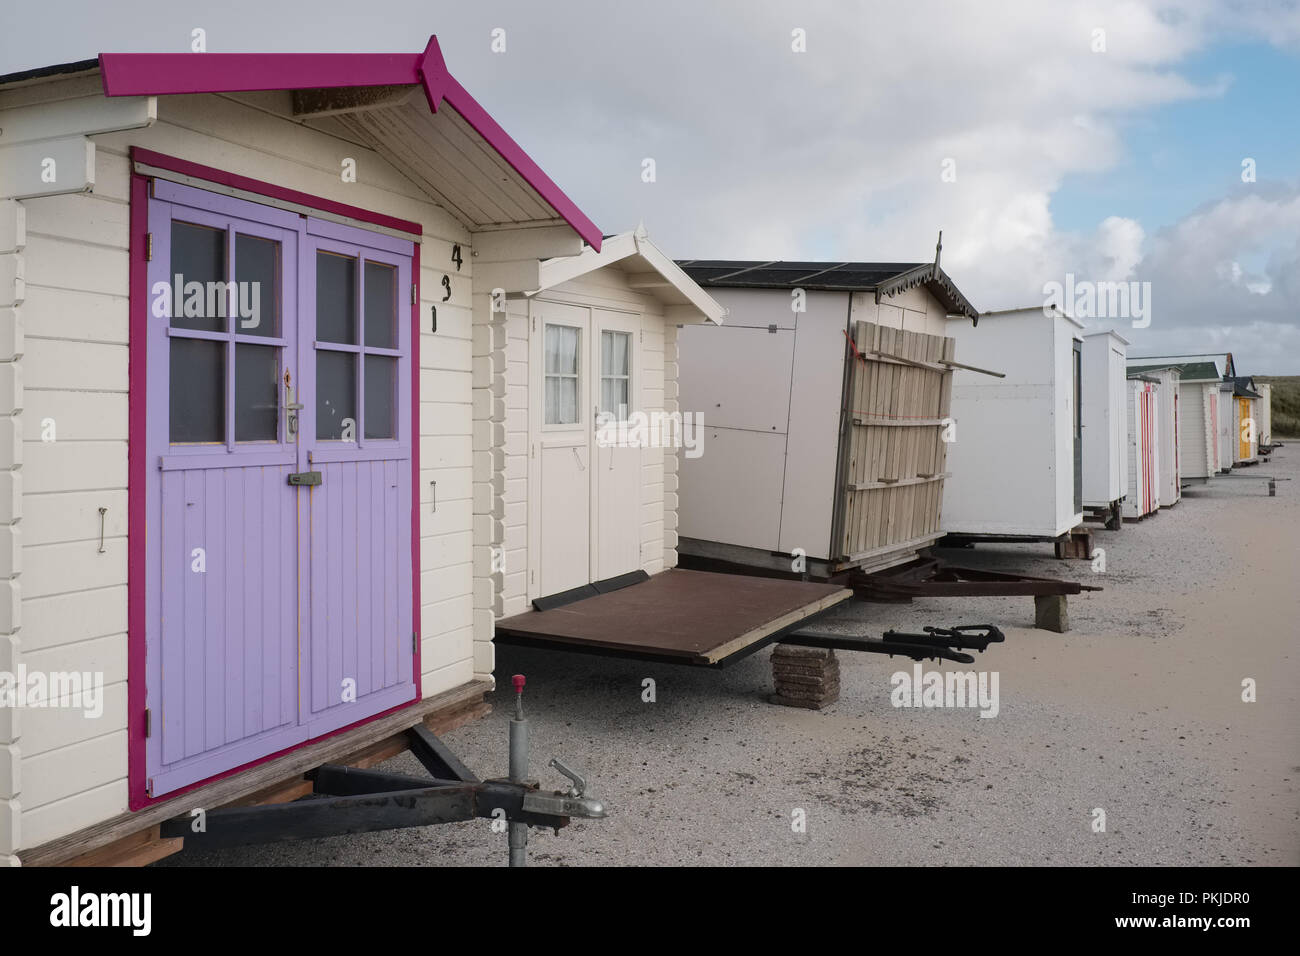 Beach houses lined up waiting for summer, Saturday 14 May 2016, Texel, the Netherlands. Stock Photo